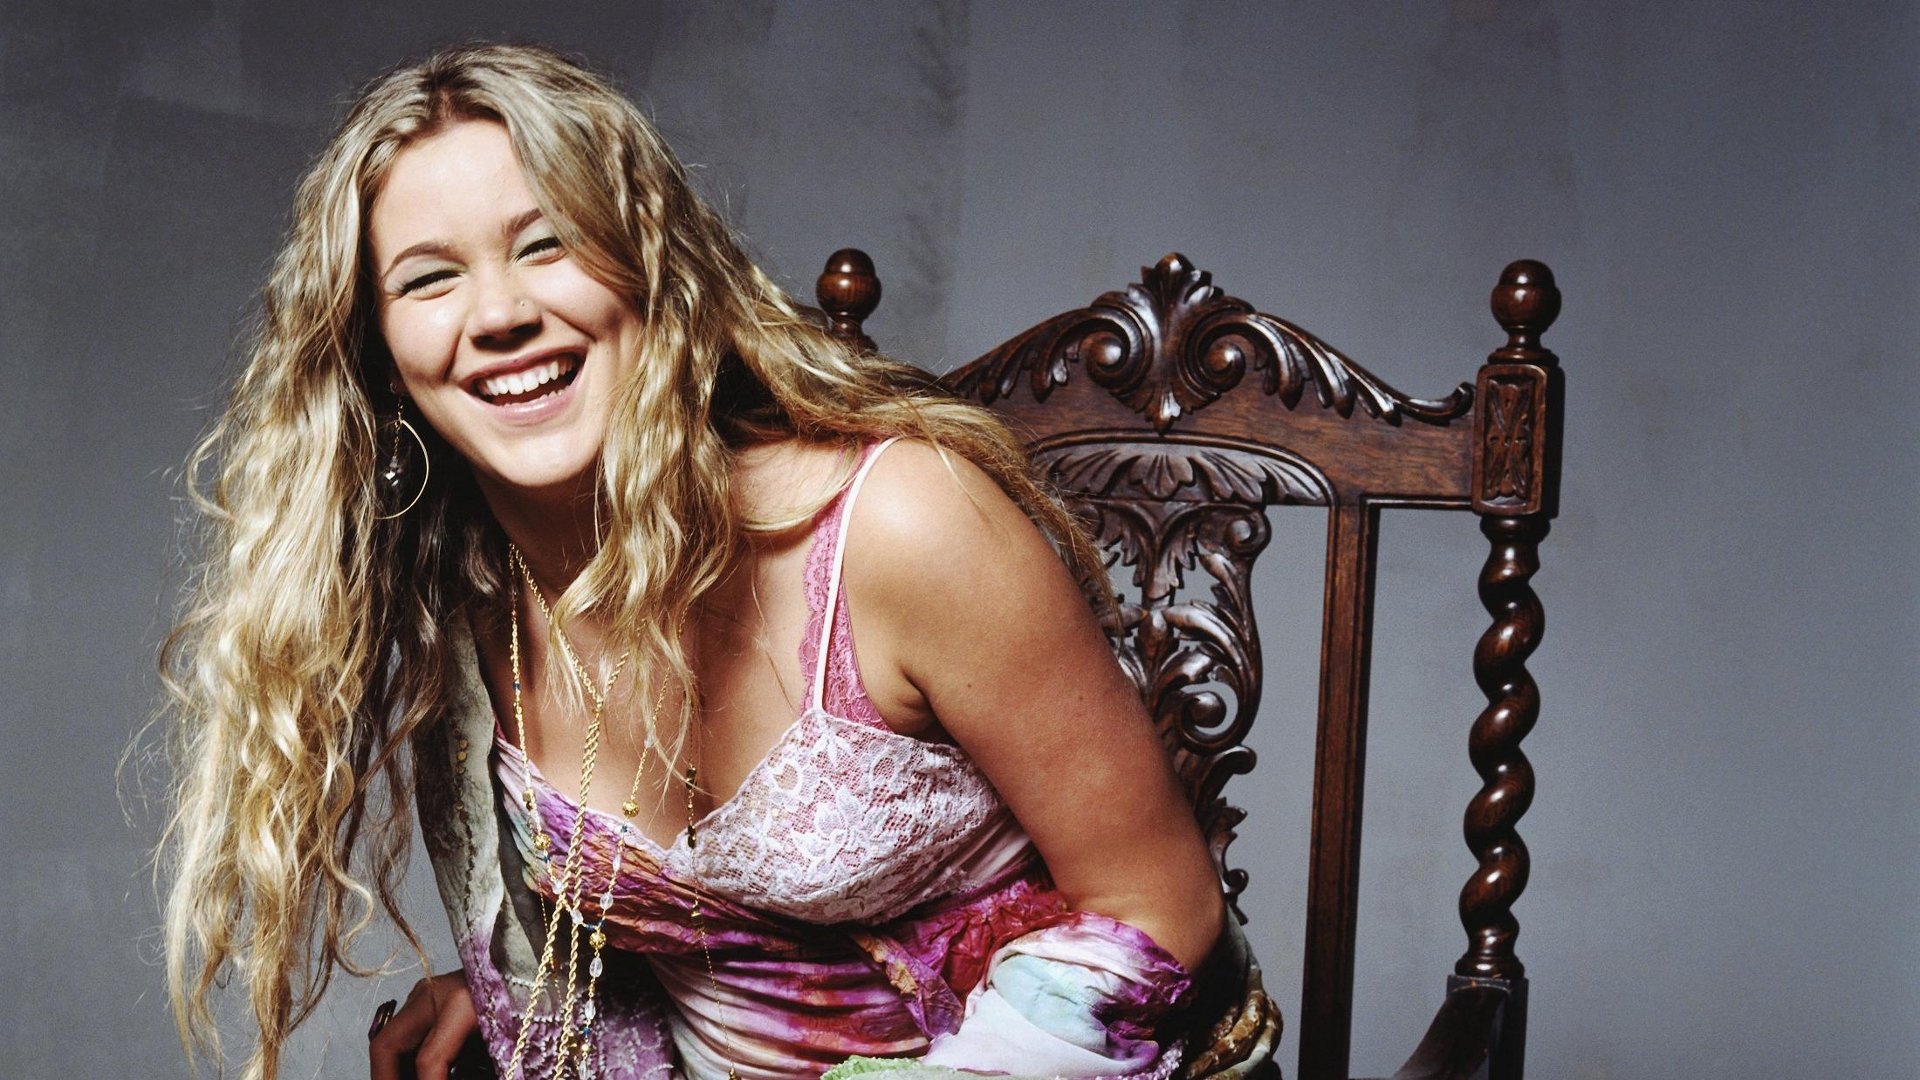 happy joss stone wallpaper 61069